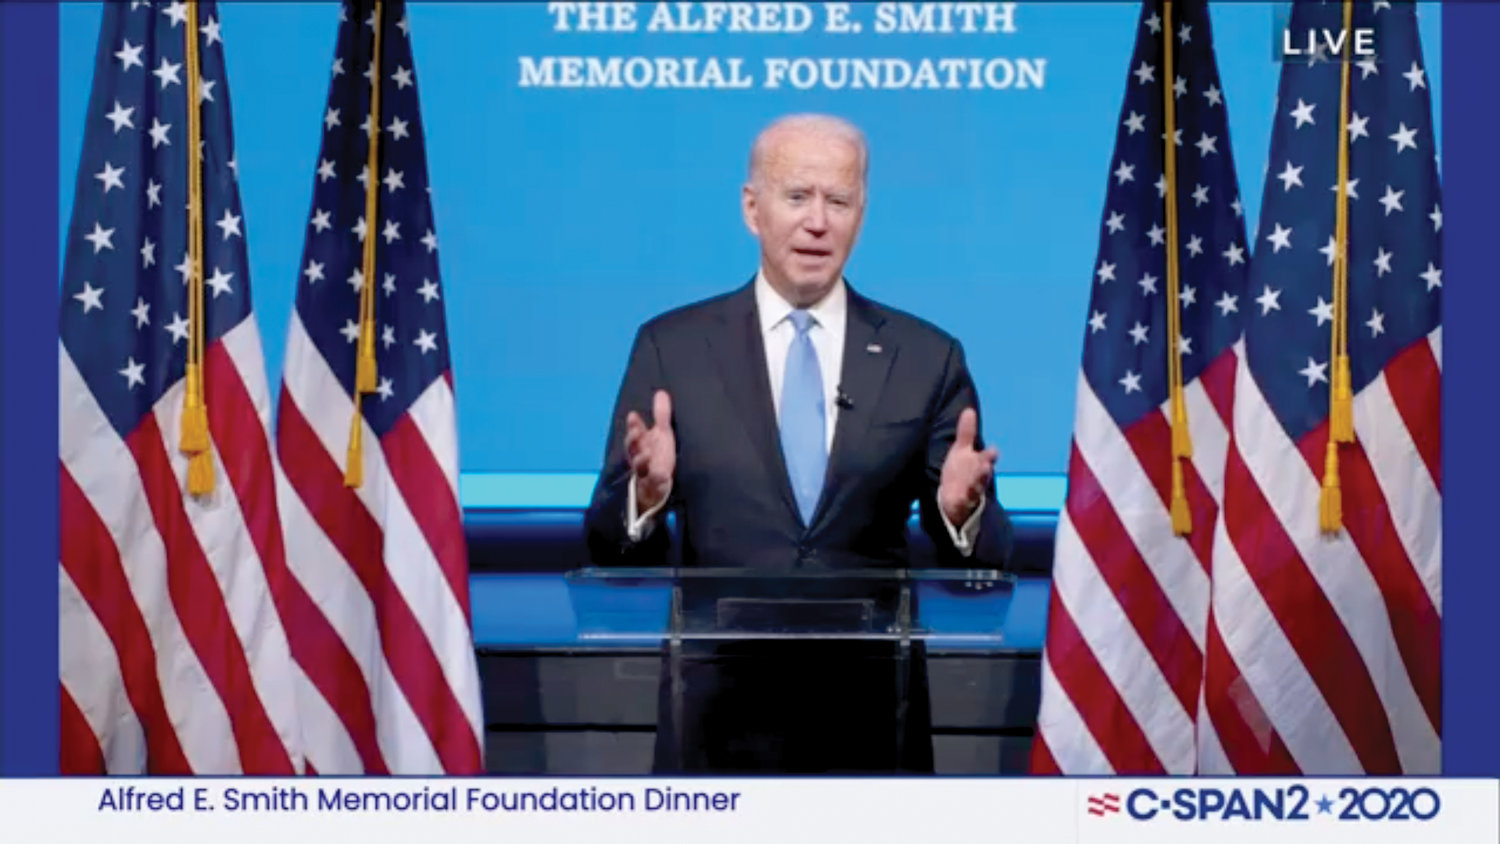 The 75th Annual Alfred E. Smith Memorial Foundation Dinner Virtual Event is livestreamed from the residence of Cardinal Dolan Oct. 1 due to the coronavirus pandemic. Remarks via recorded videos were delivered by President Donald J. Trump, and former Vice President Joseph R. Biden, the candidates in next month's presidential election.